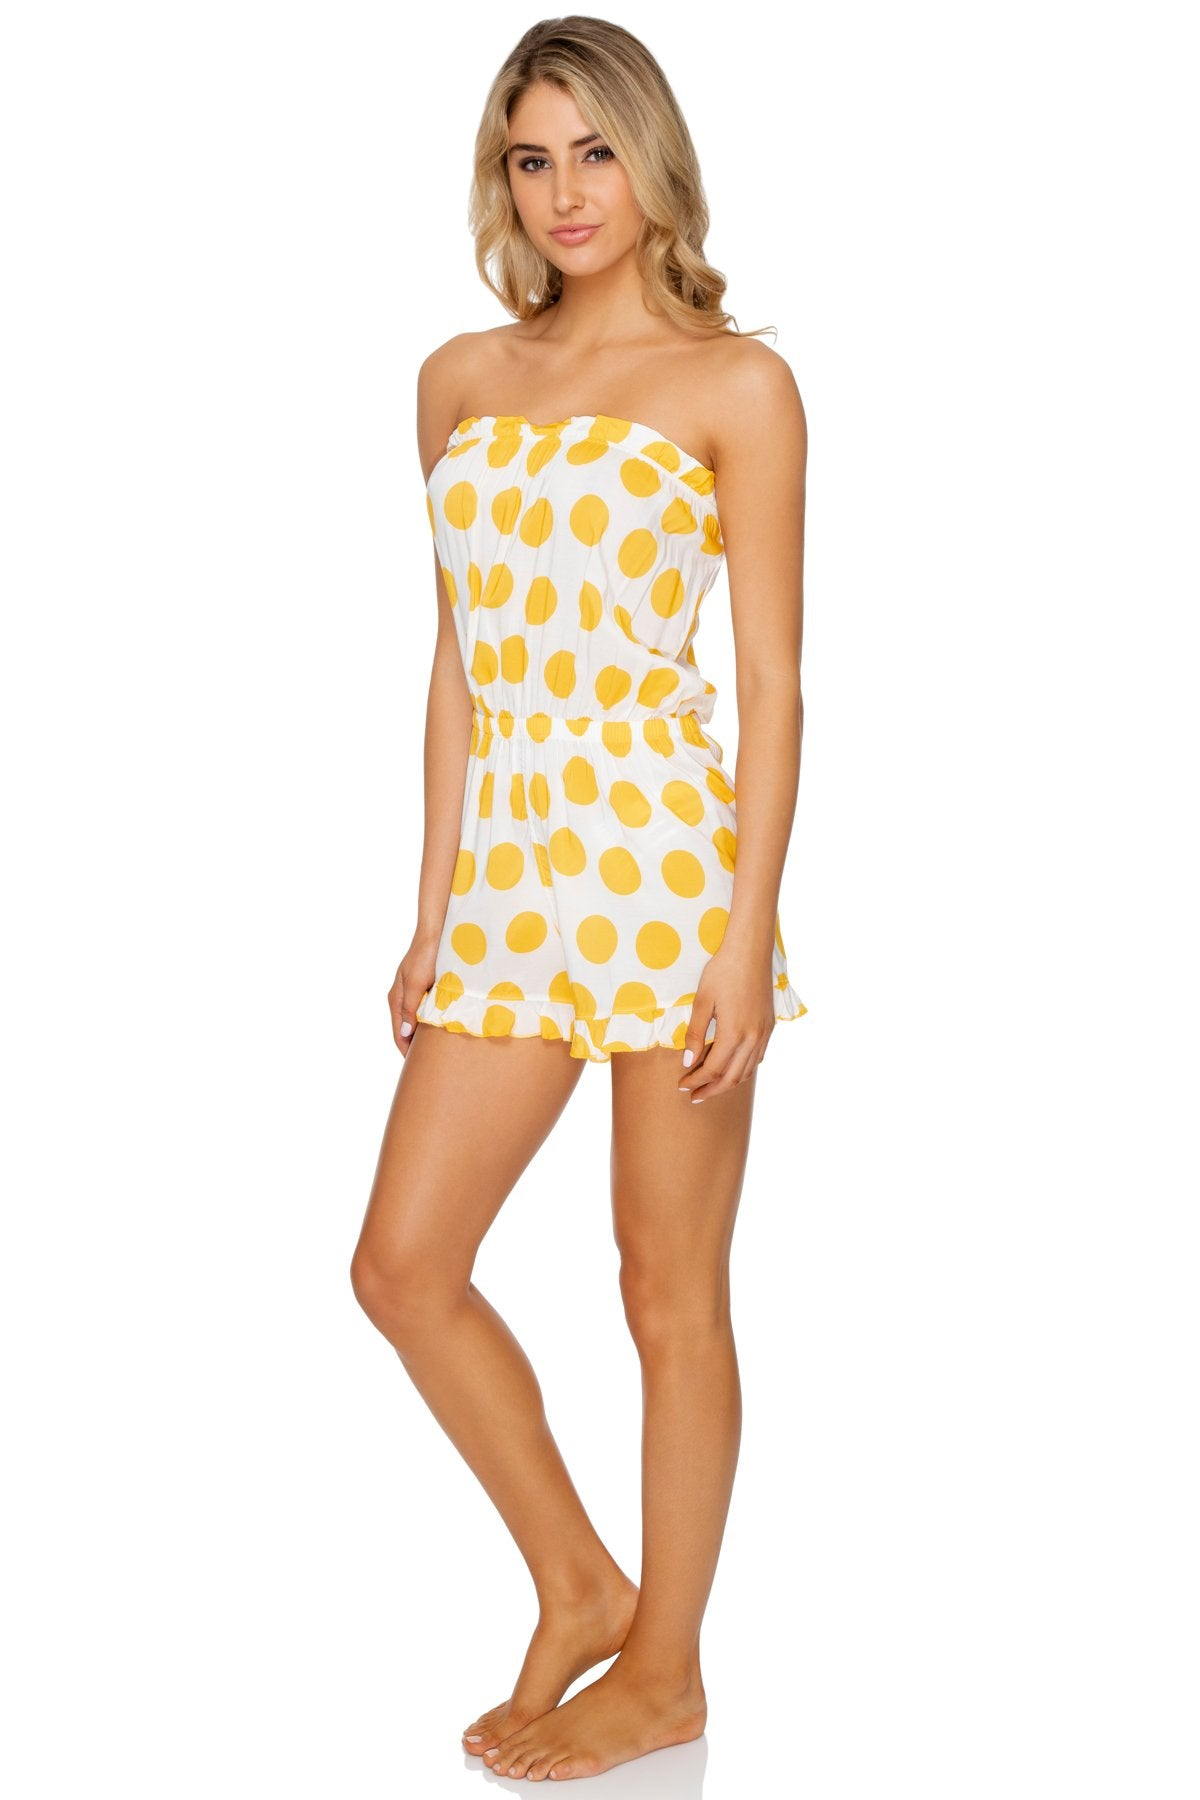 ITSY BITSY - Strapless Ruffle Romper • Yellow (1636922851430)